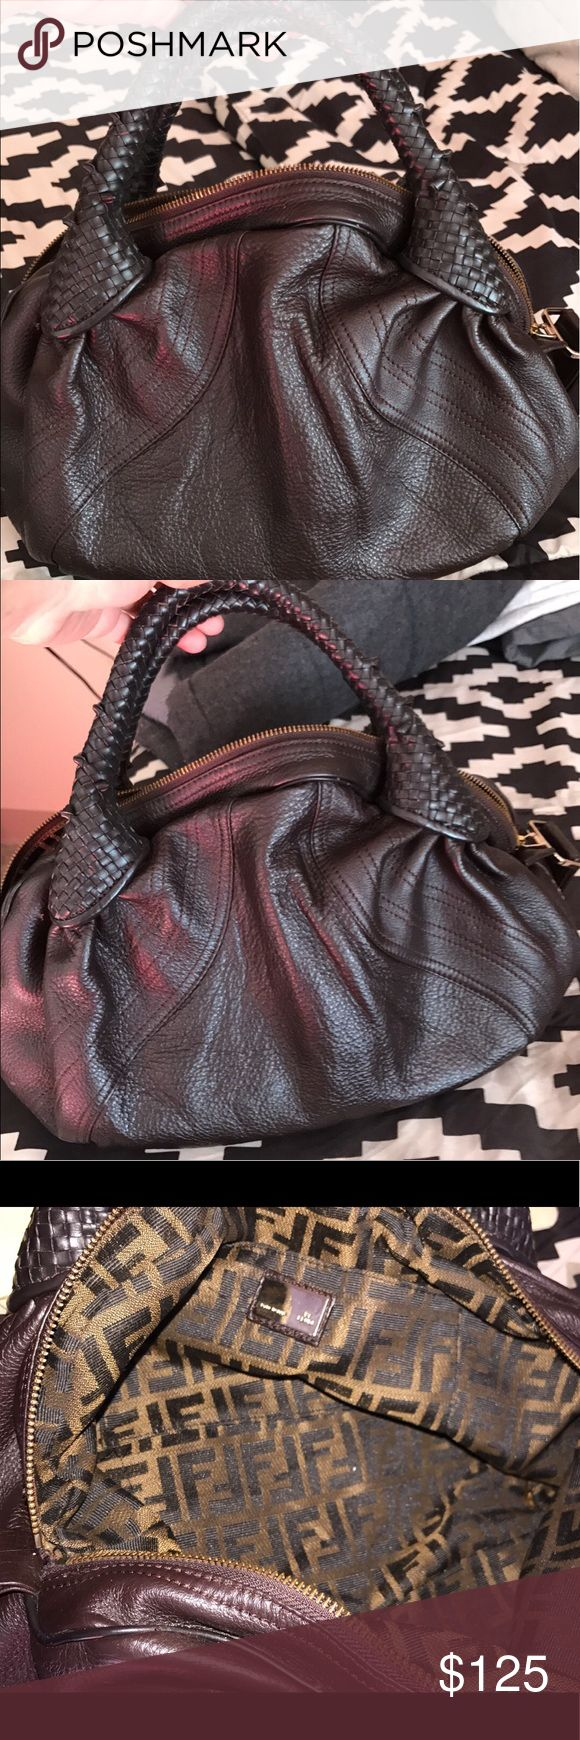 Fendi Mini spy bag Great condition Fendi mini spy bag, I'm the third owner however it had a tear inside and the previous owner got it fixed not noticeable at all inside very clean. The leather on the outside is excellent. Smoke free. Priced to sale Fendi Bags